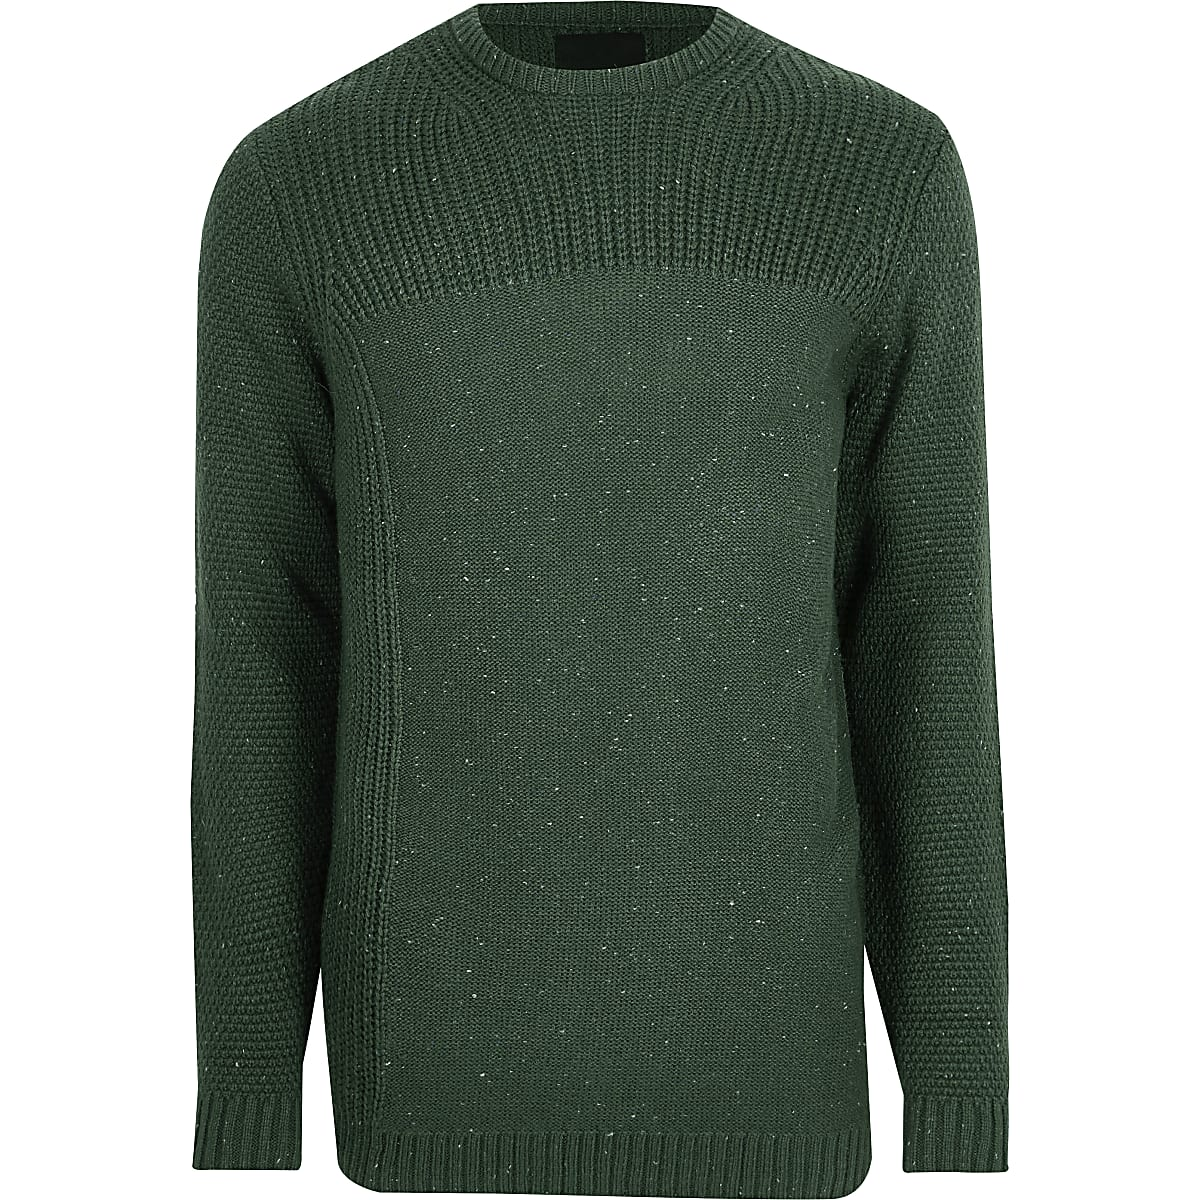 Dark green textured crew neck sweater